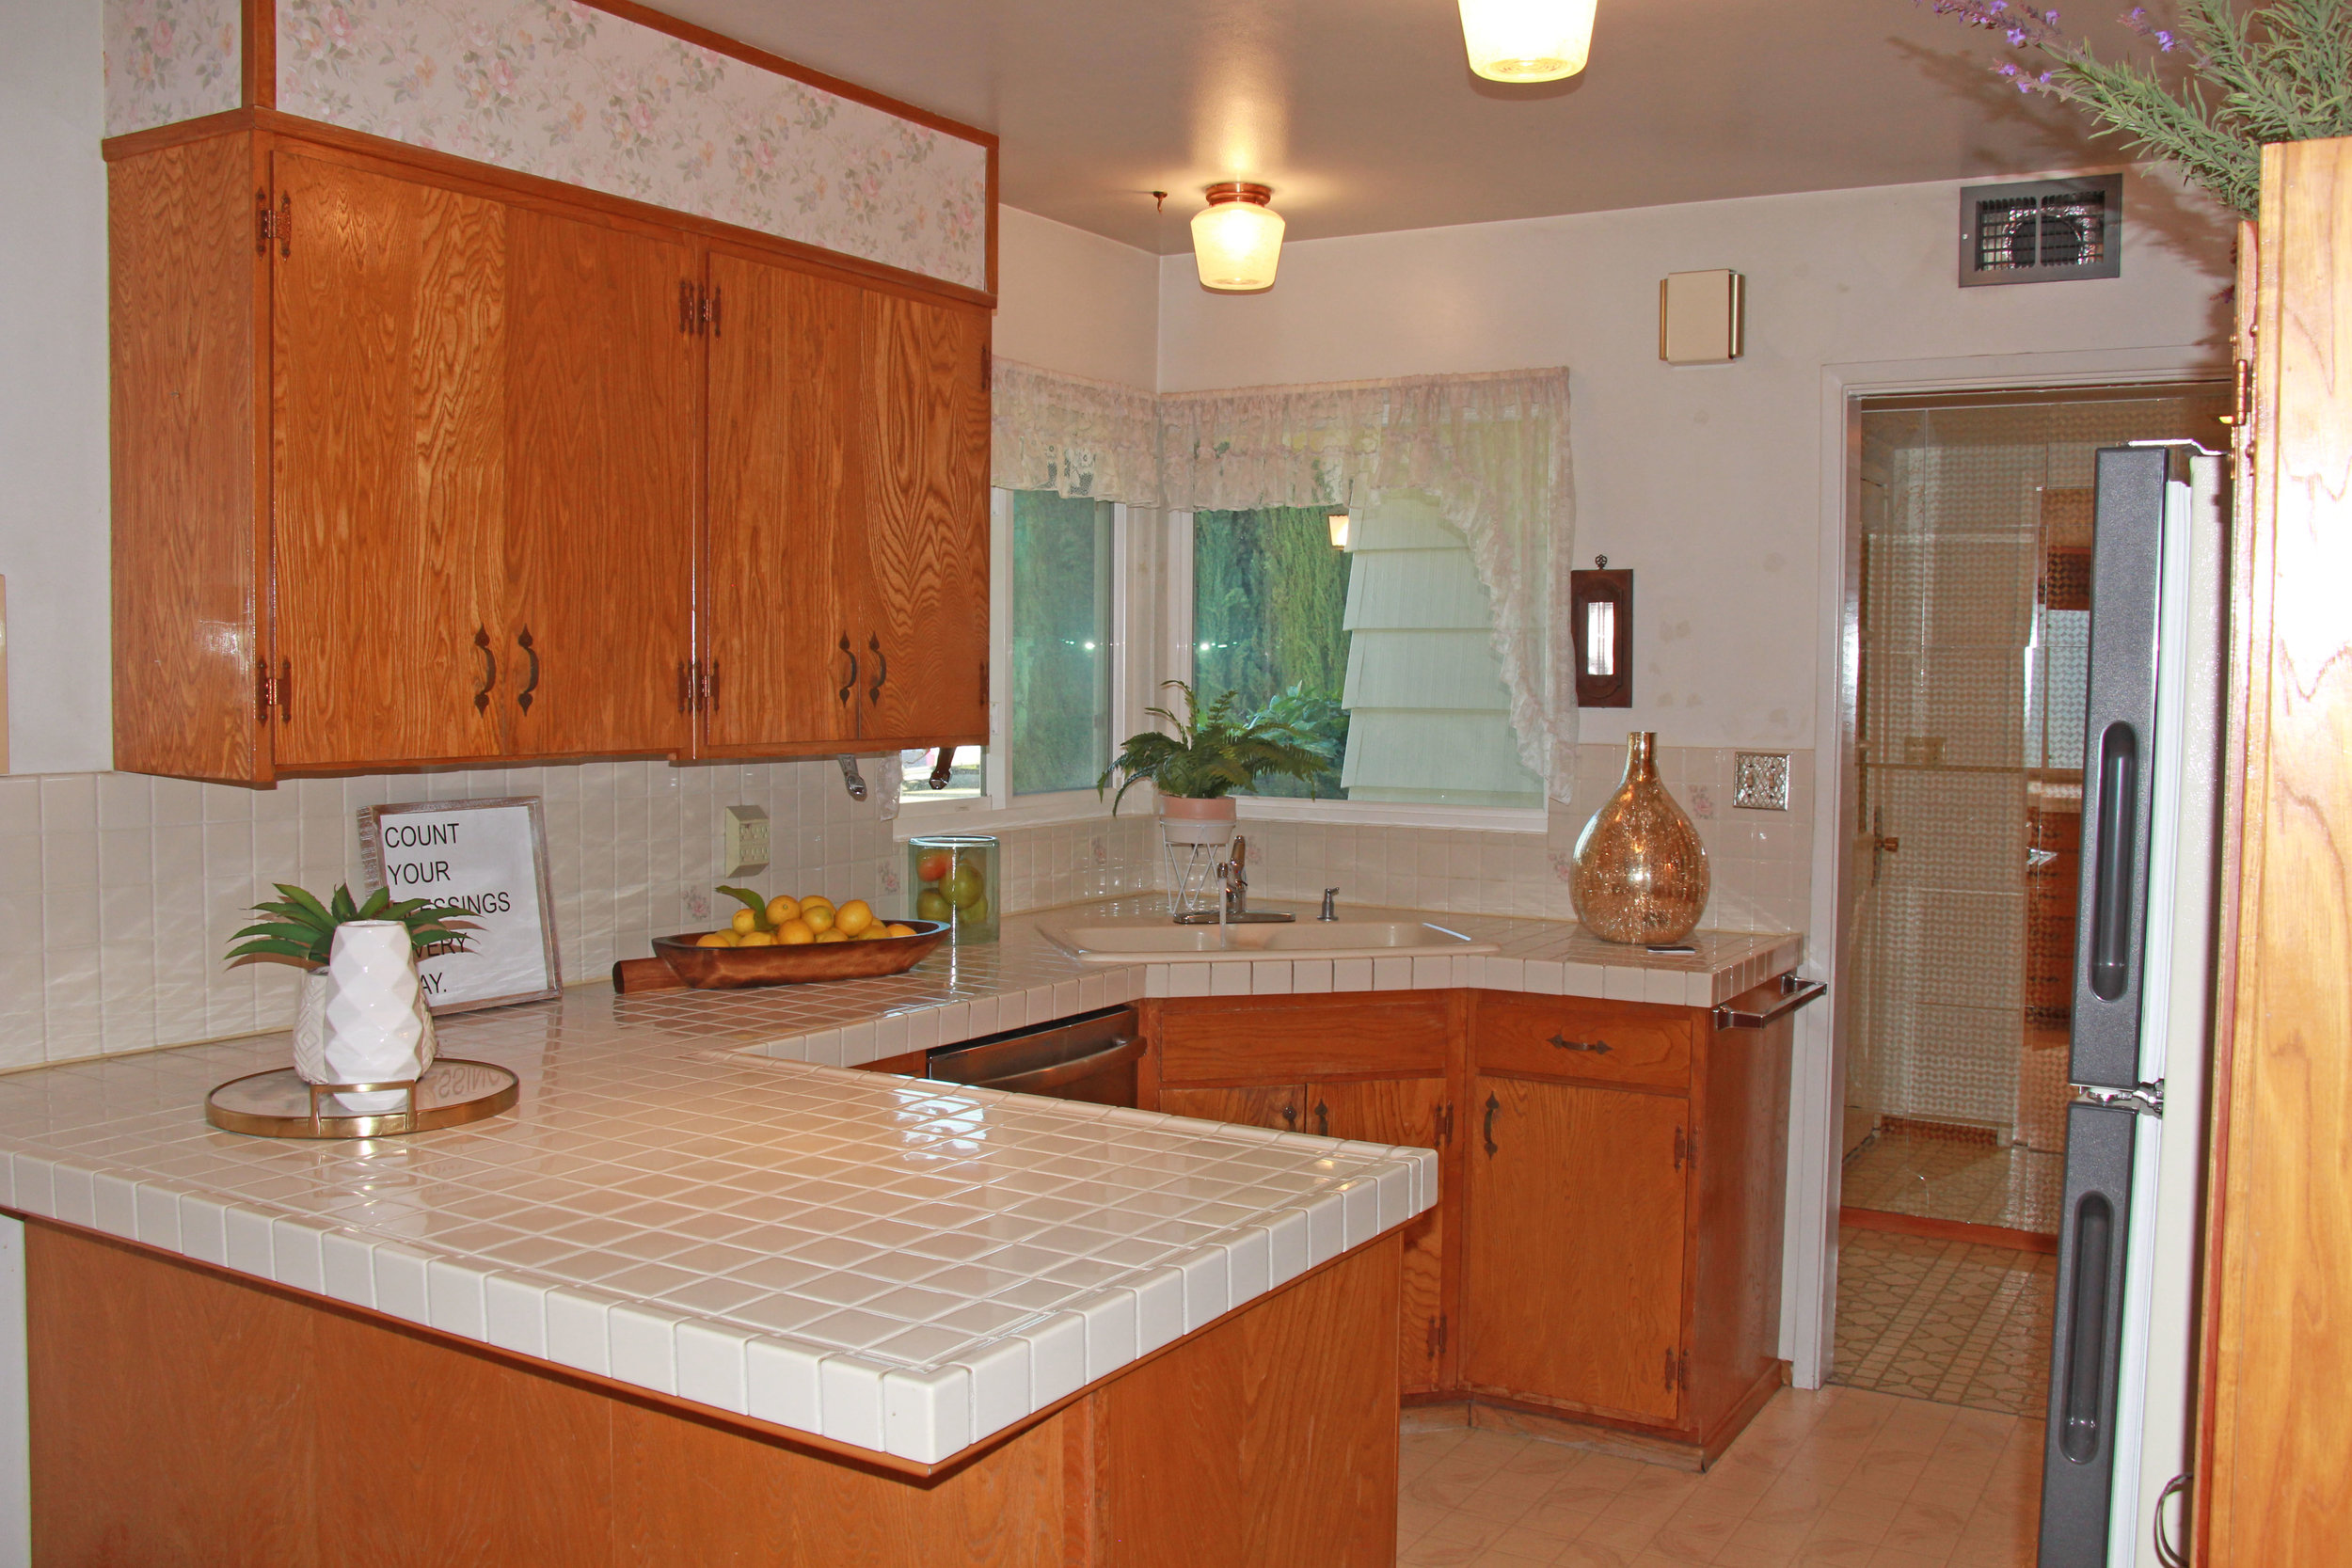 kitchen from dining.jpg